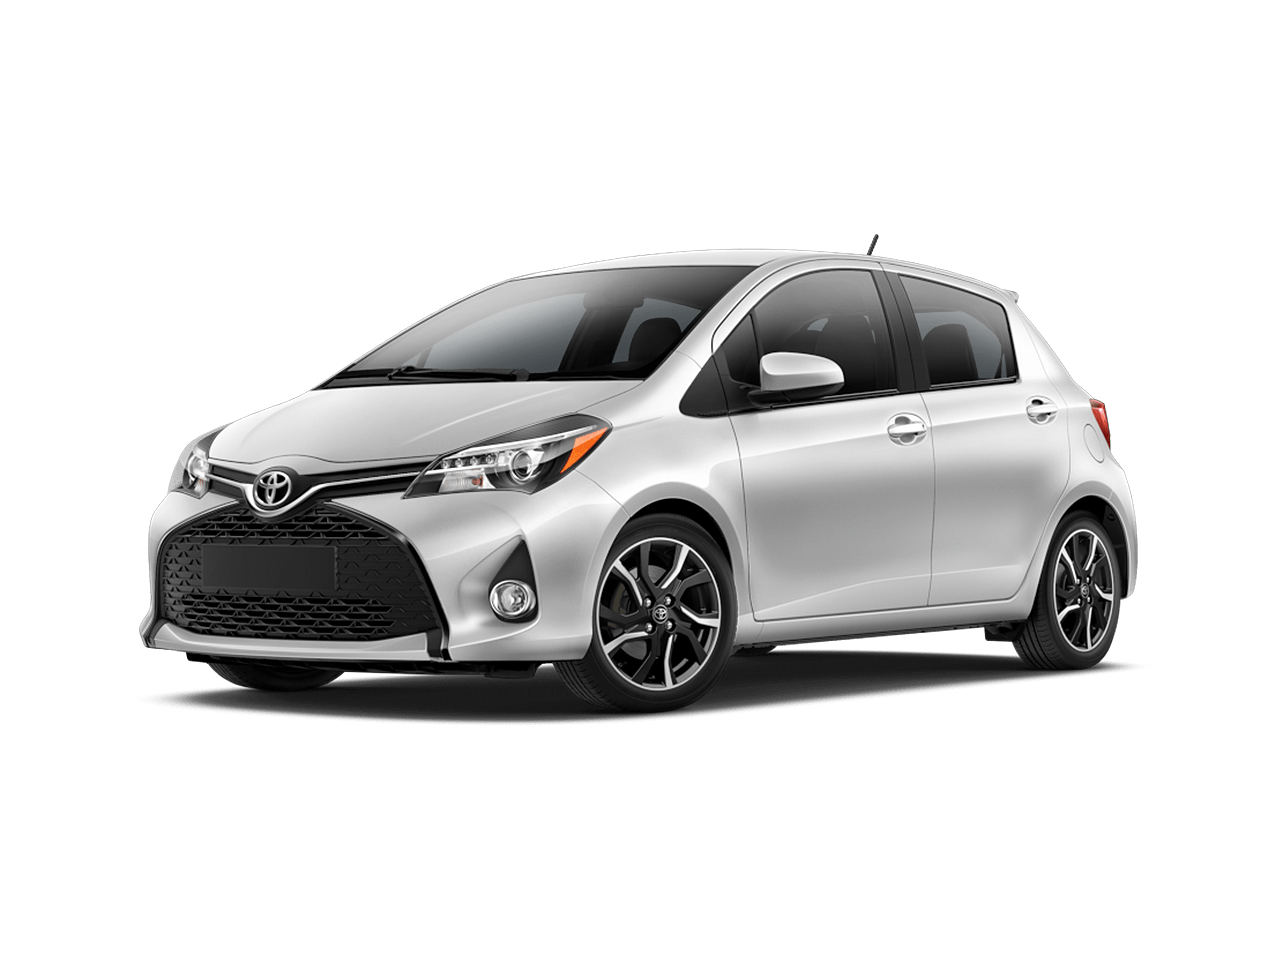 toyota yaris 2017 trd parts grand new avanza review for sale near san diego of el cajon